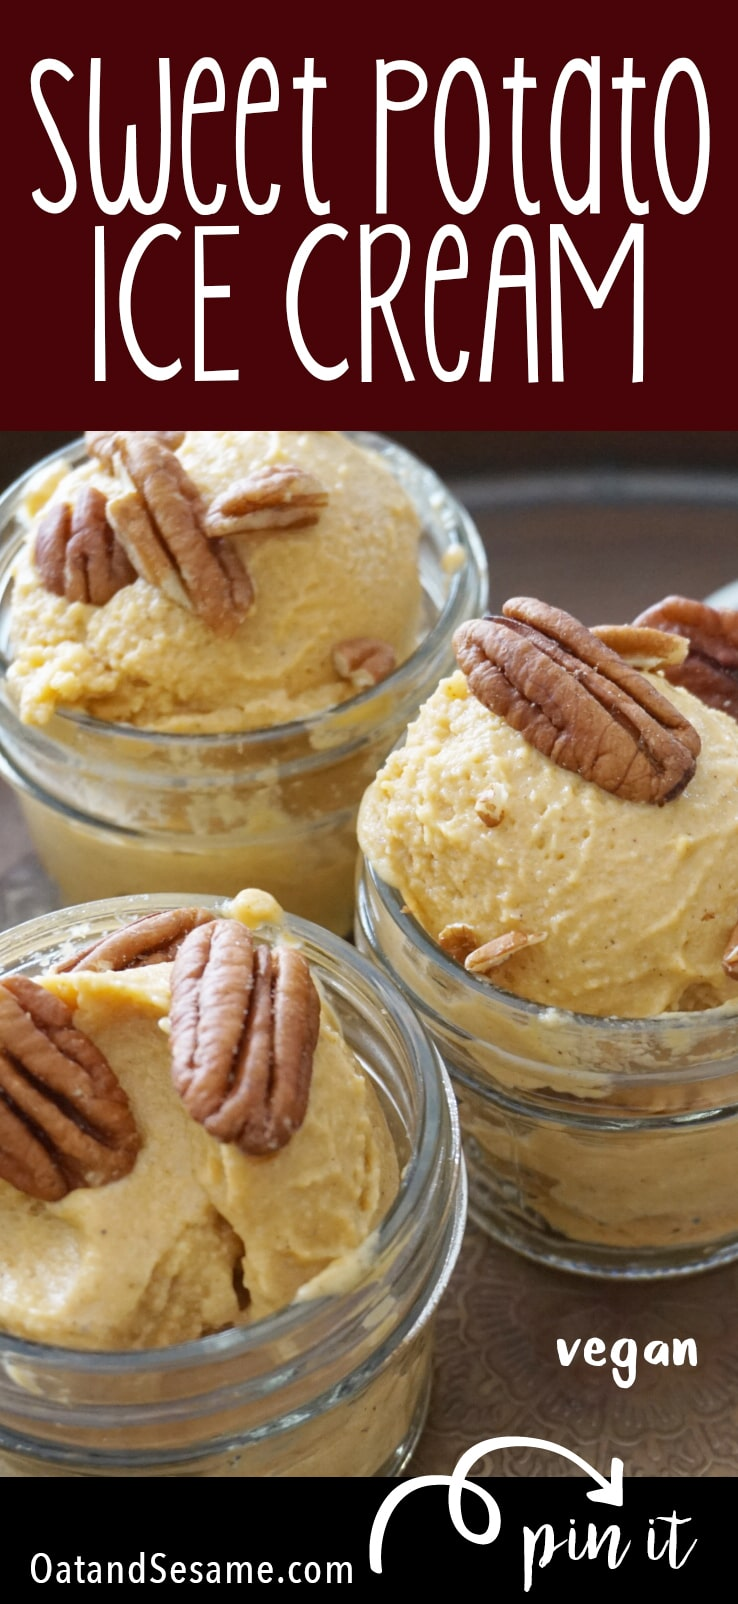 Sweet Potato Ice Cream - it's just like pie and dairy free! Try it with purple sweet potatoes for a purple ice cream! | VEGAN | HEALTHY DESSERTS | Recipe at OatandSesame.com